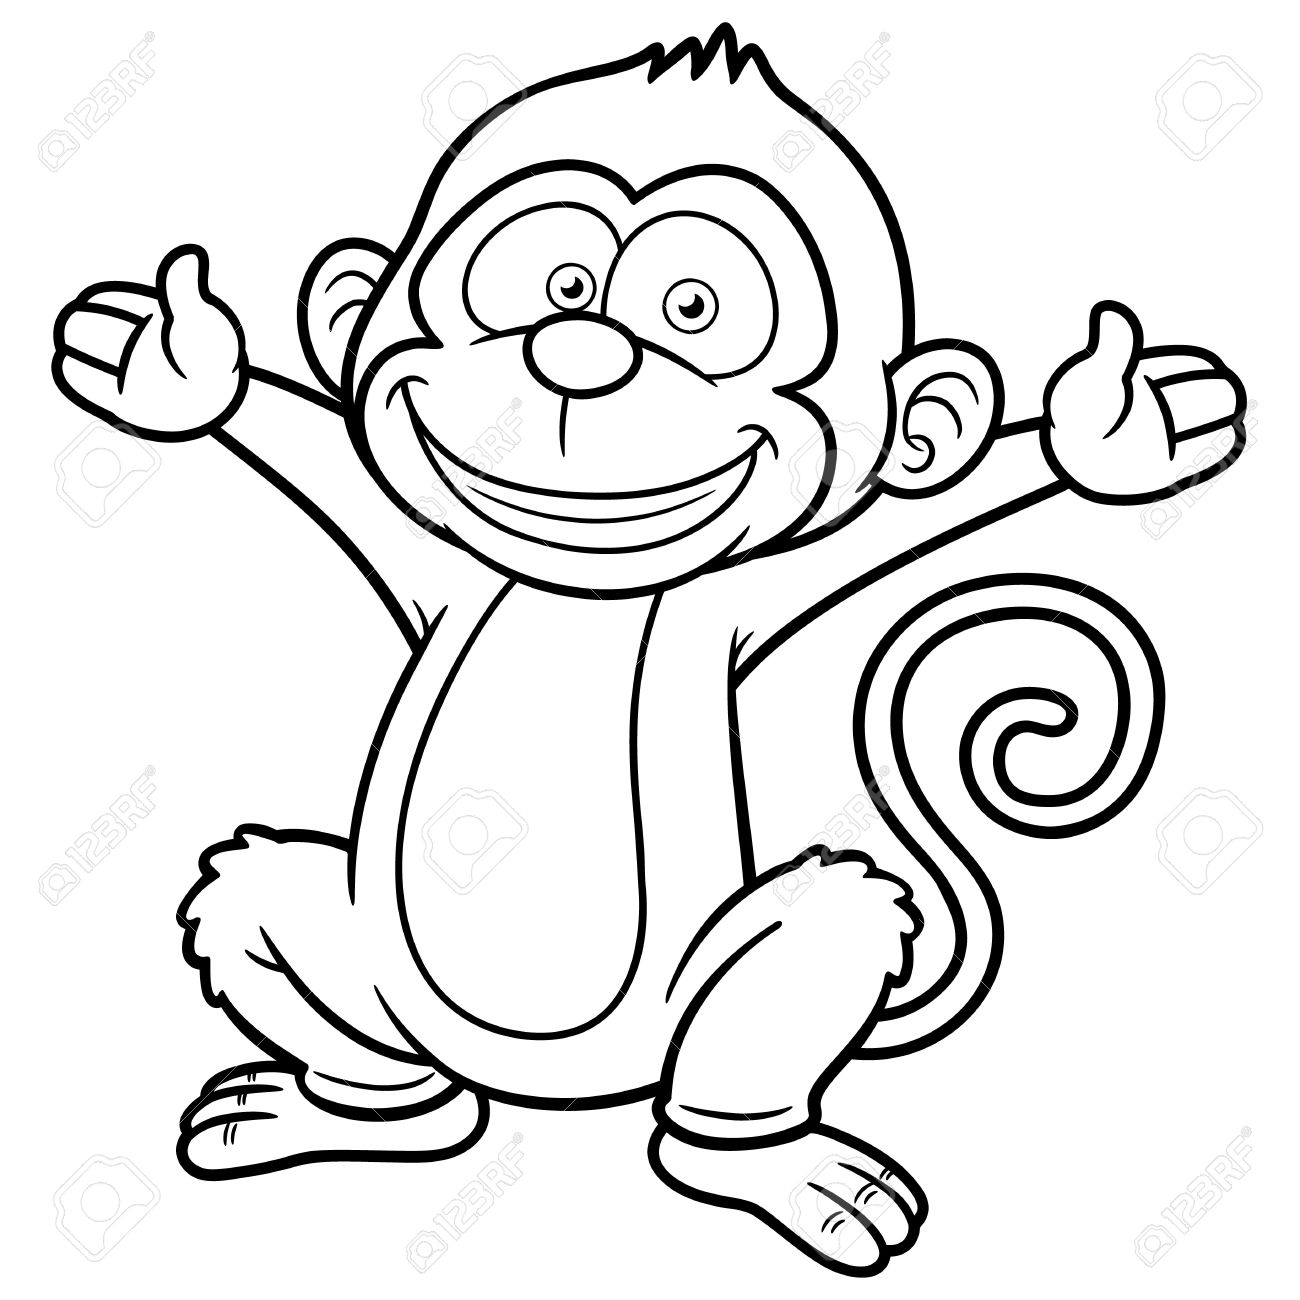 1300x1300 Monkey Outline Clipart